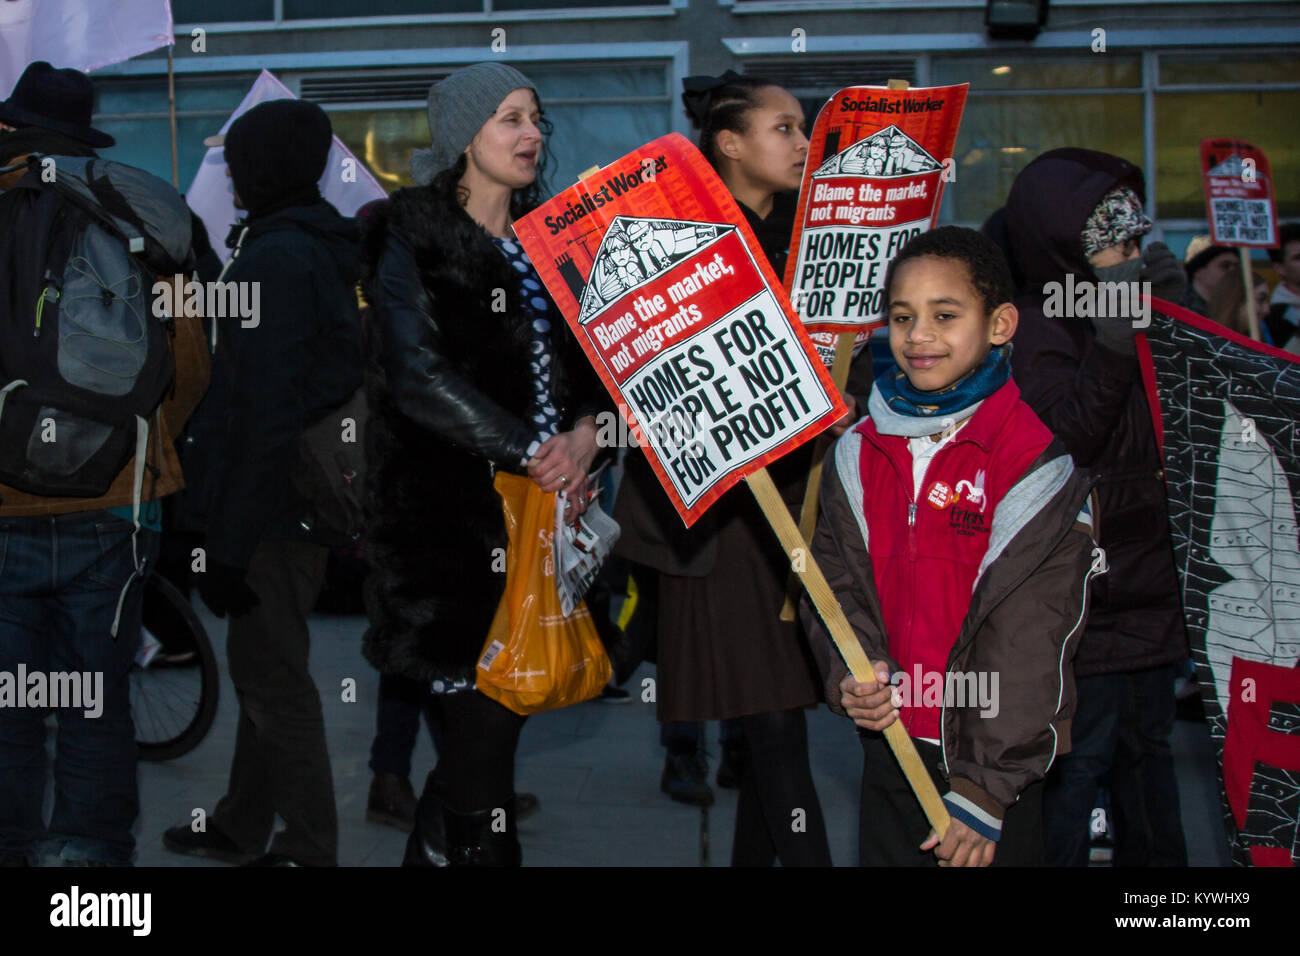 London, UK. 16th Jan, 2018. Protesters marched to a planning meeting of Southwark Council to demonstrate against Stock Photo